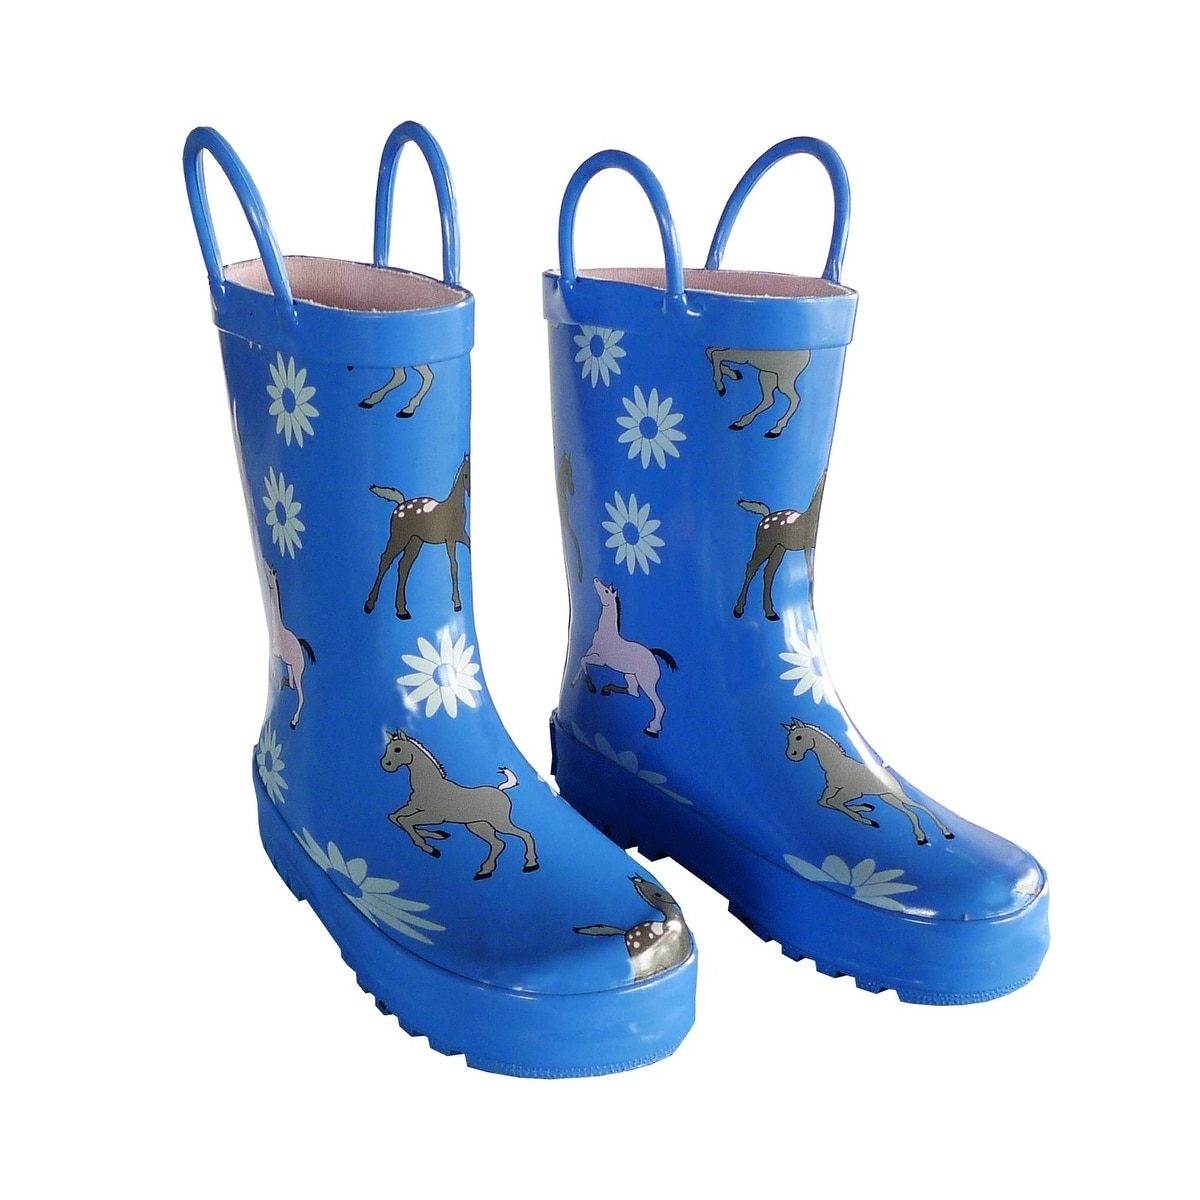 c86961e83 Shop Blue Pony Boys Girls Rain Boots 11-3 - Free Shipping On Orders Over  $45 - Overstock.com - 25599963